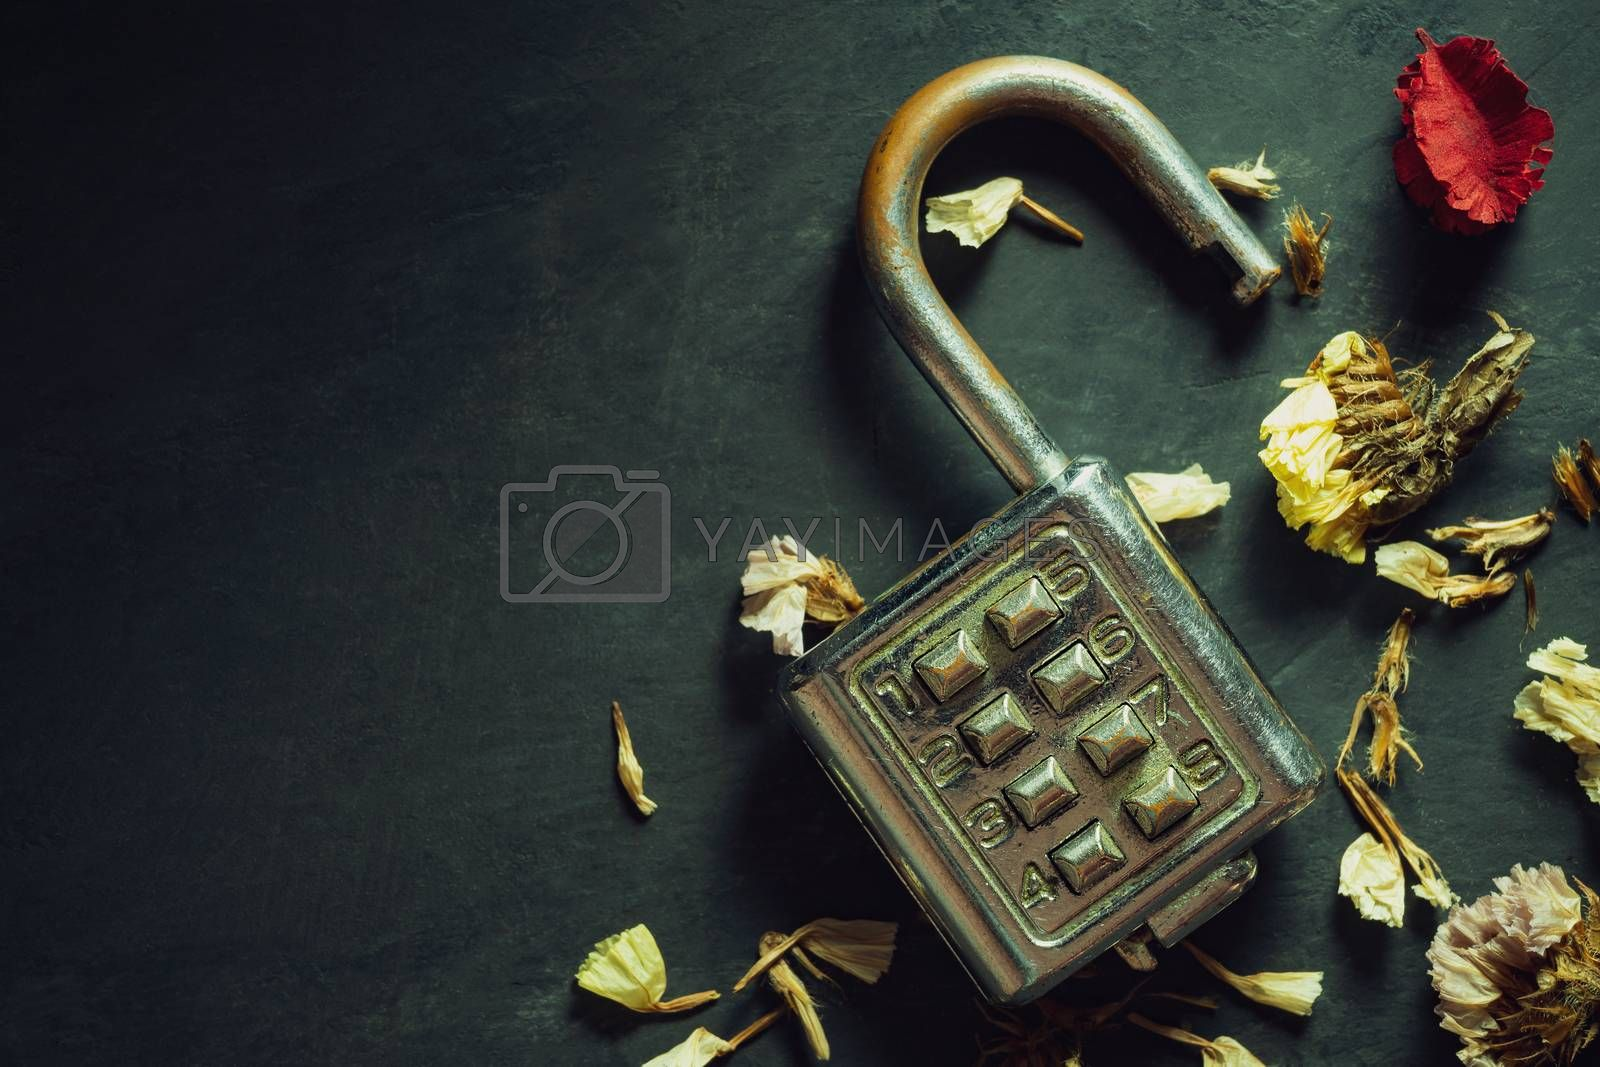 Combination padlock on blackboard background. Top view and copy space. Concept of safety and secret in vintage style.